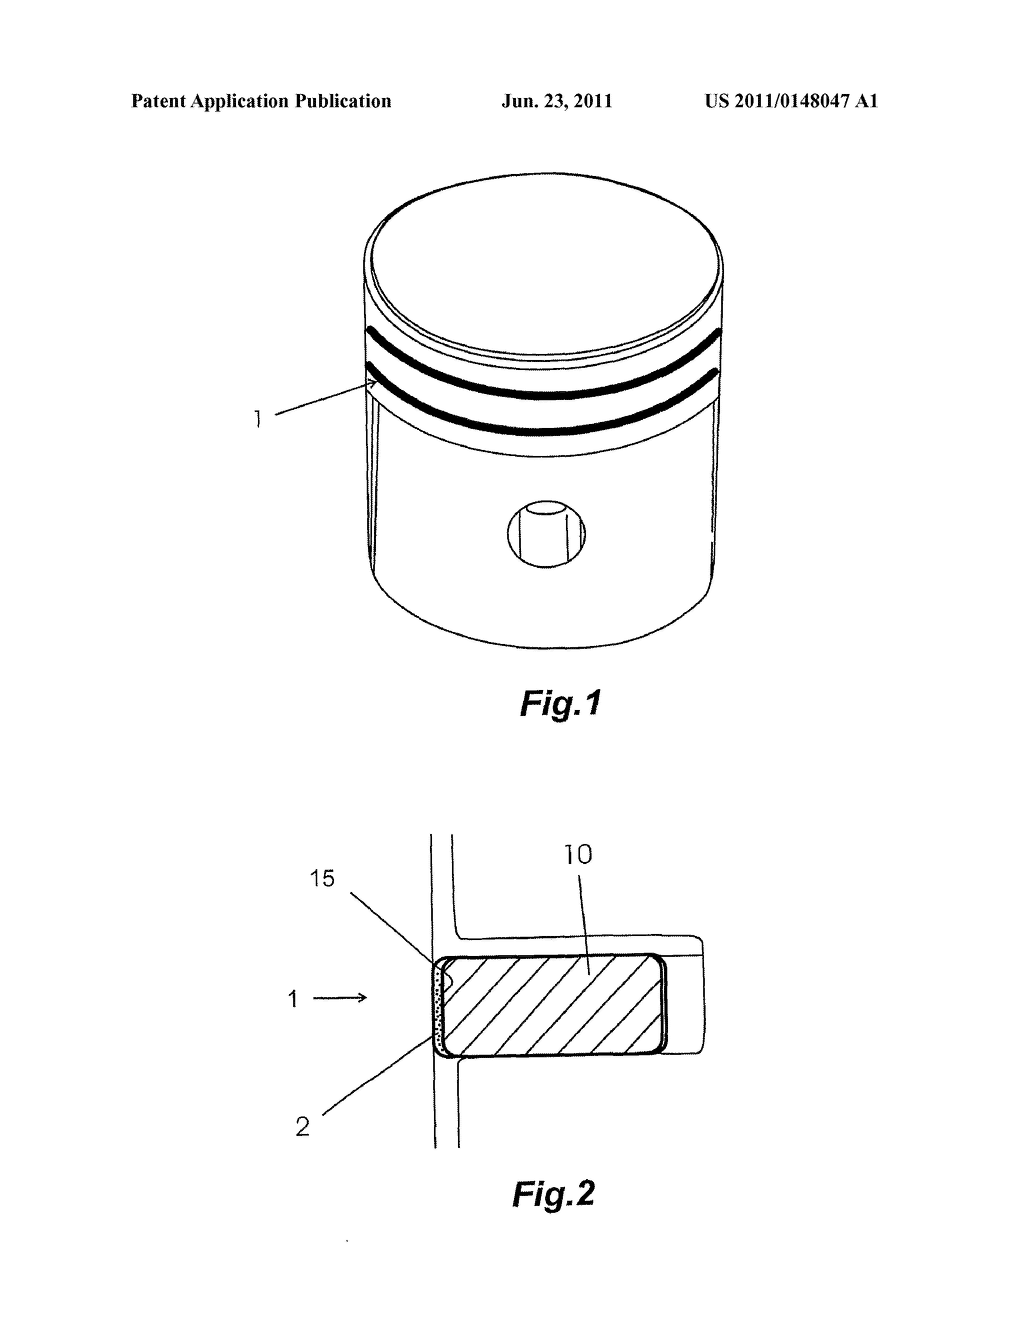 hight resolution of piston ring for internal combustion engine diagram schematic andpiston ring for internal combustion engine